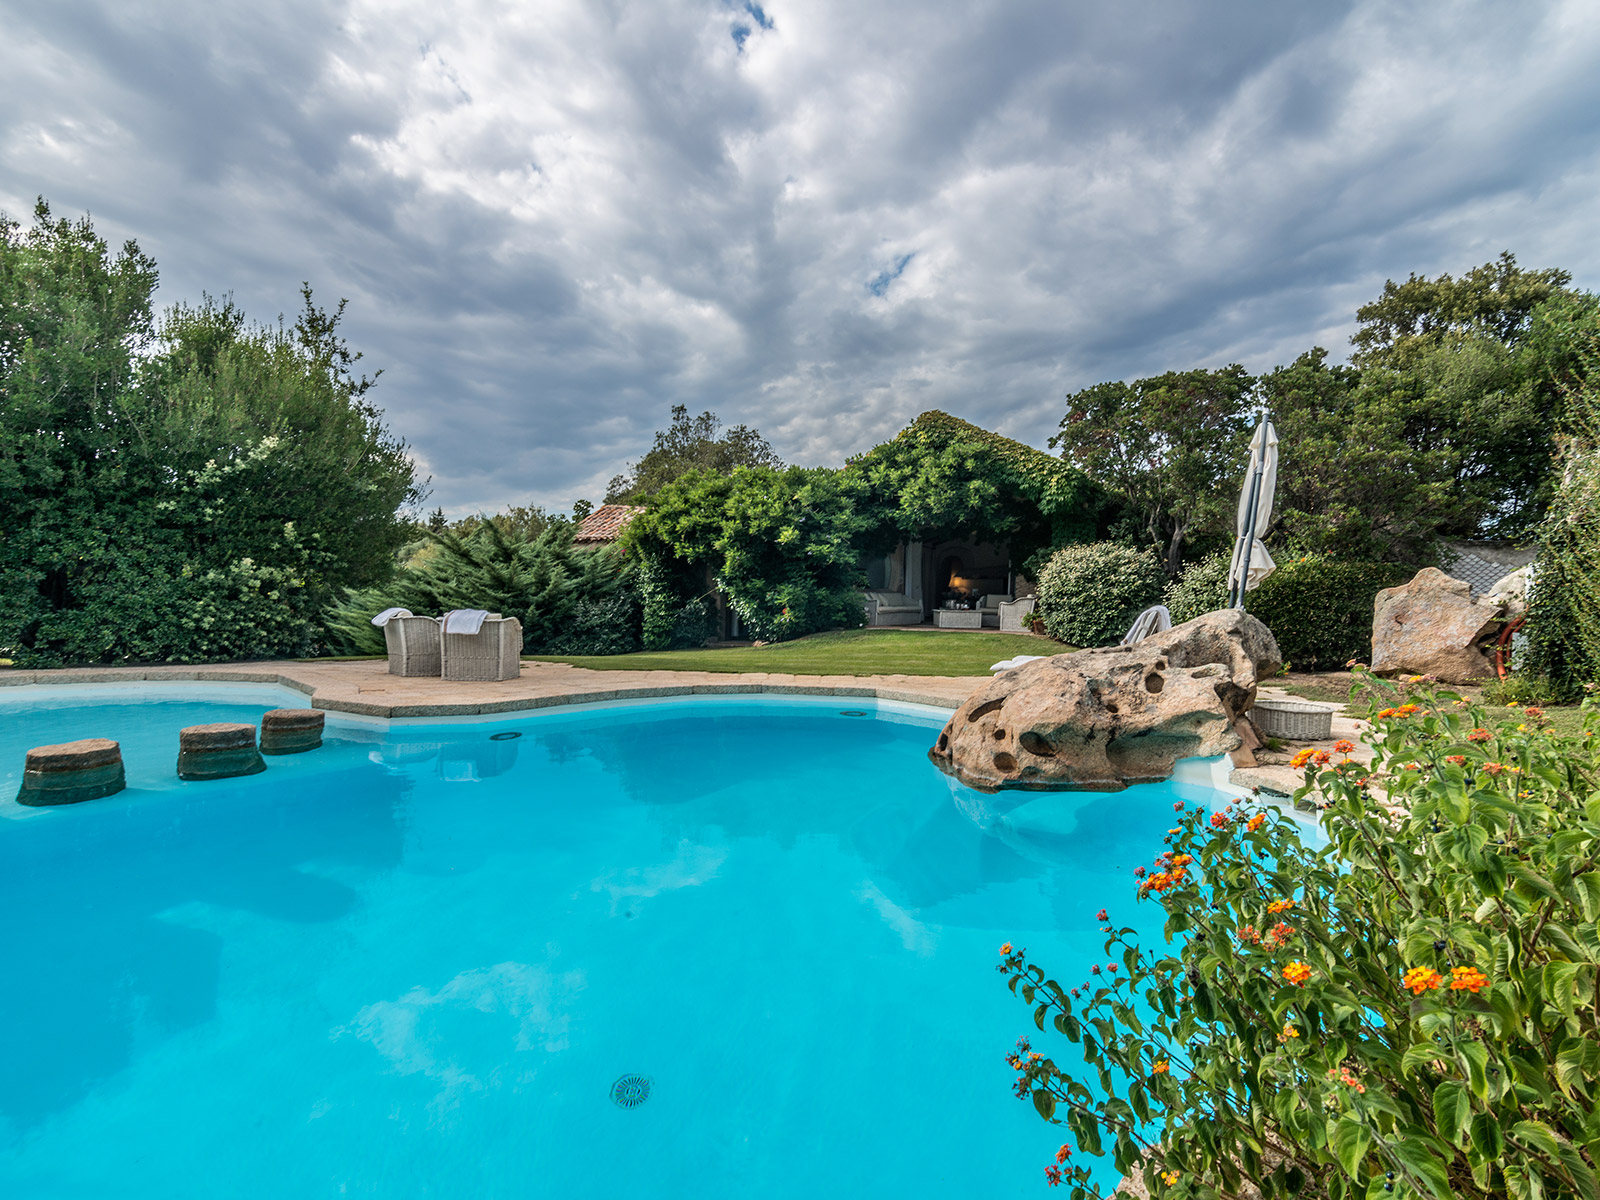 Additional photo for property listing at Magnificent sardinian style villa with private garden Via degli Stazzi Arzachena, Olbia Tempio 07021 Italien